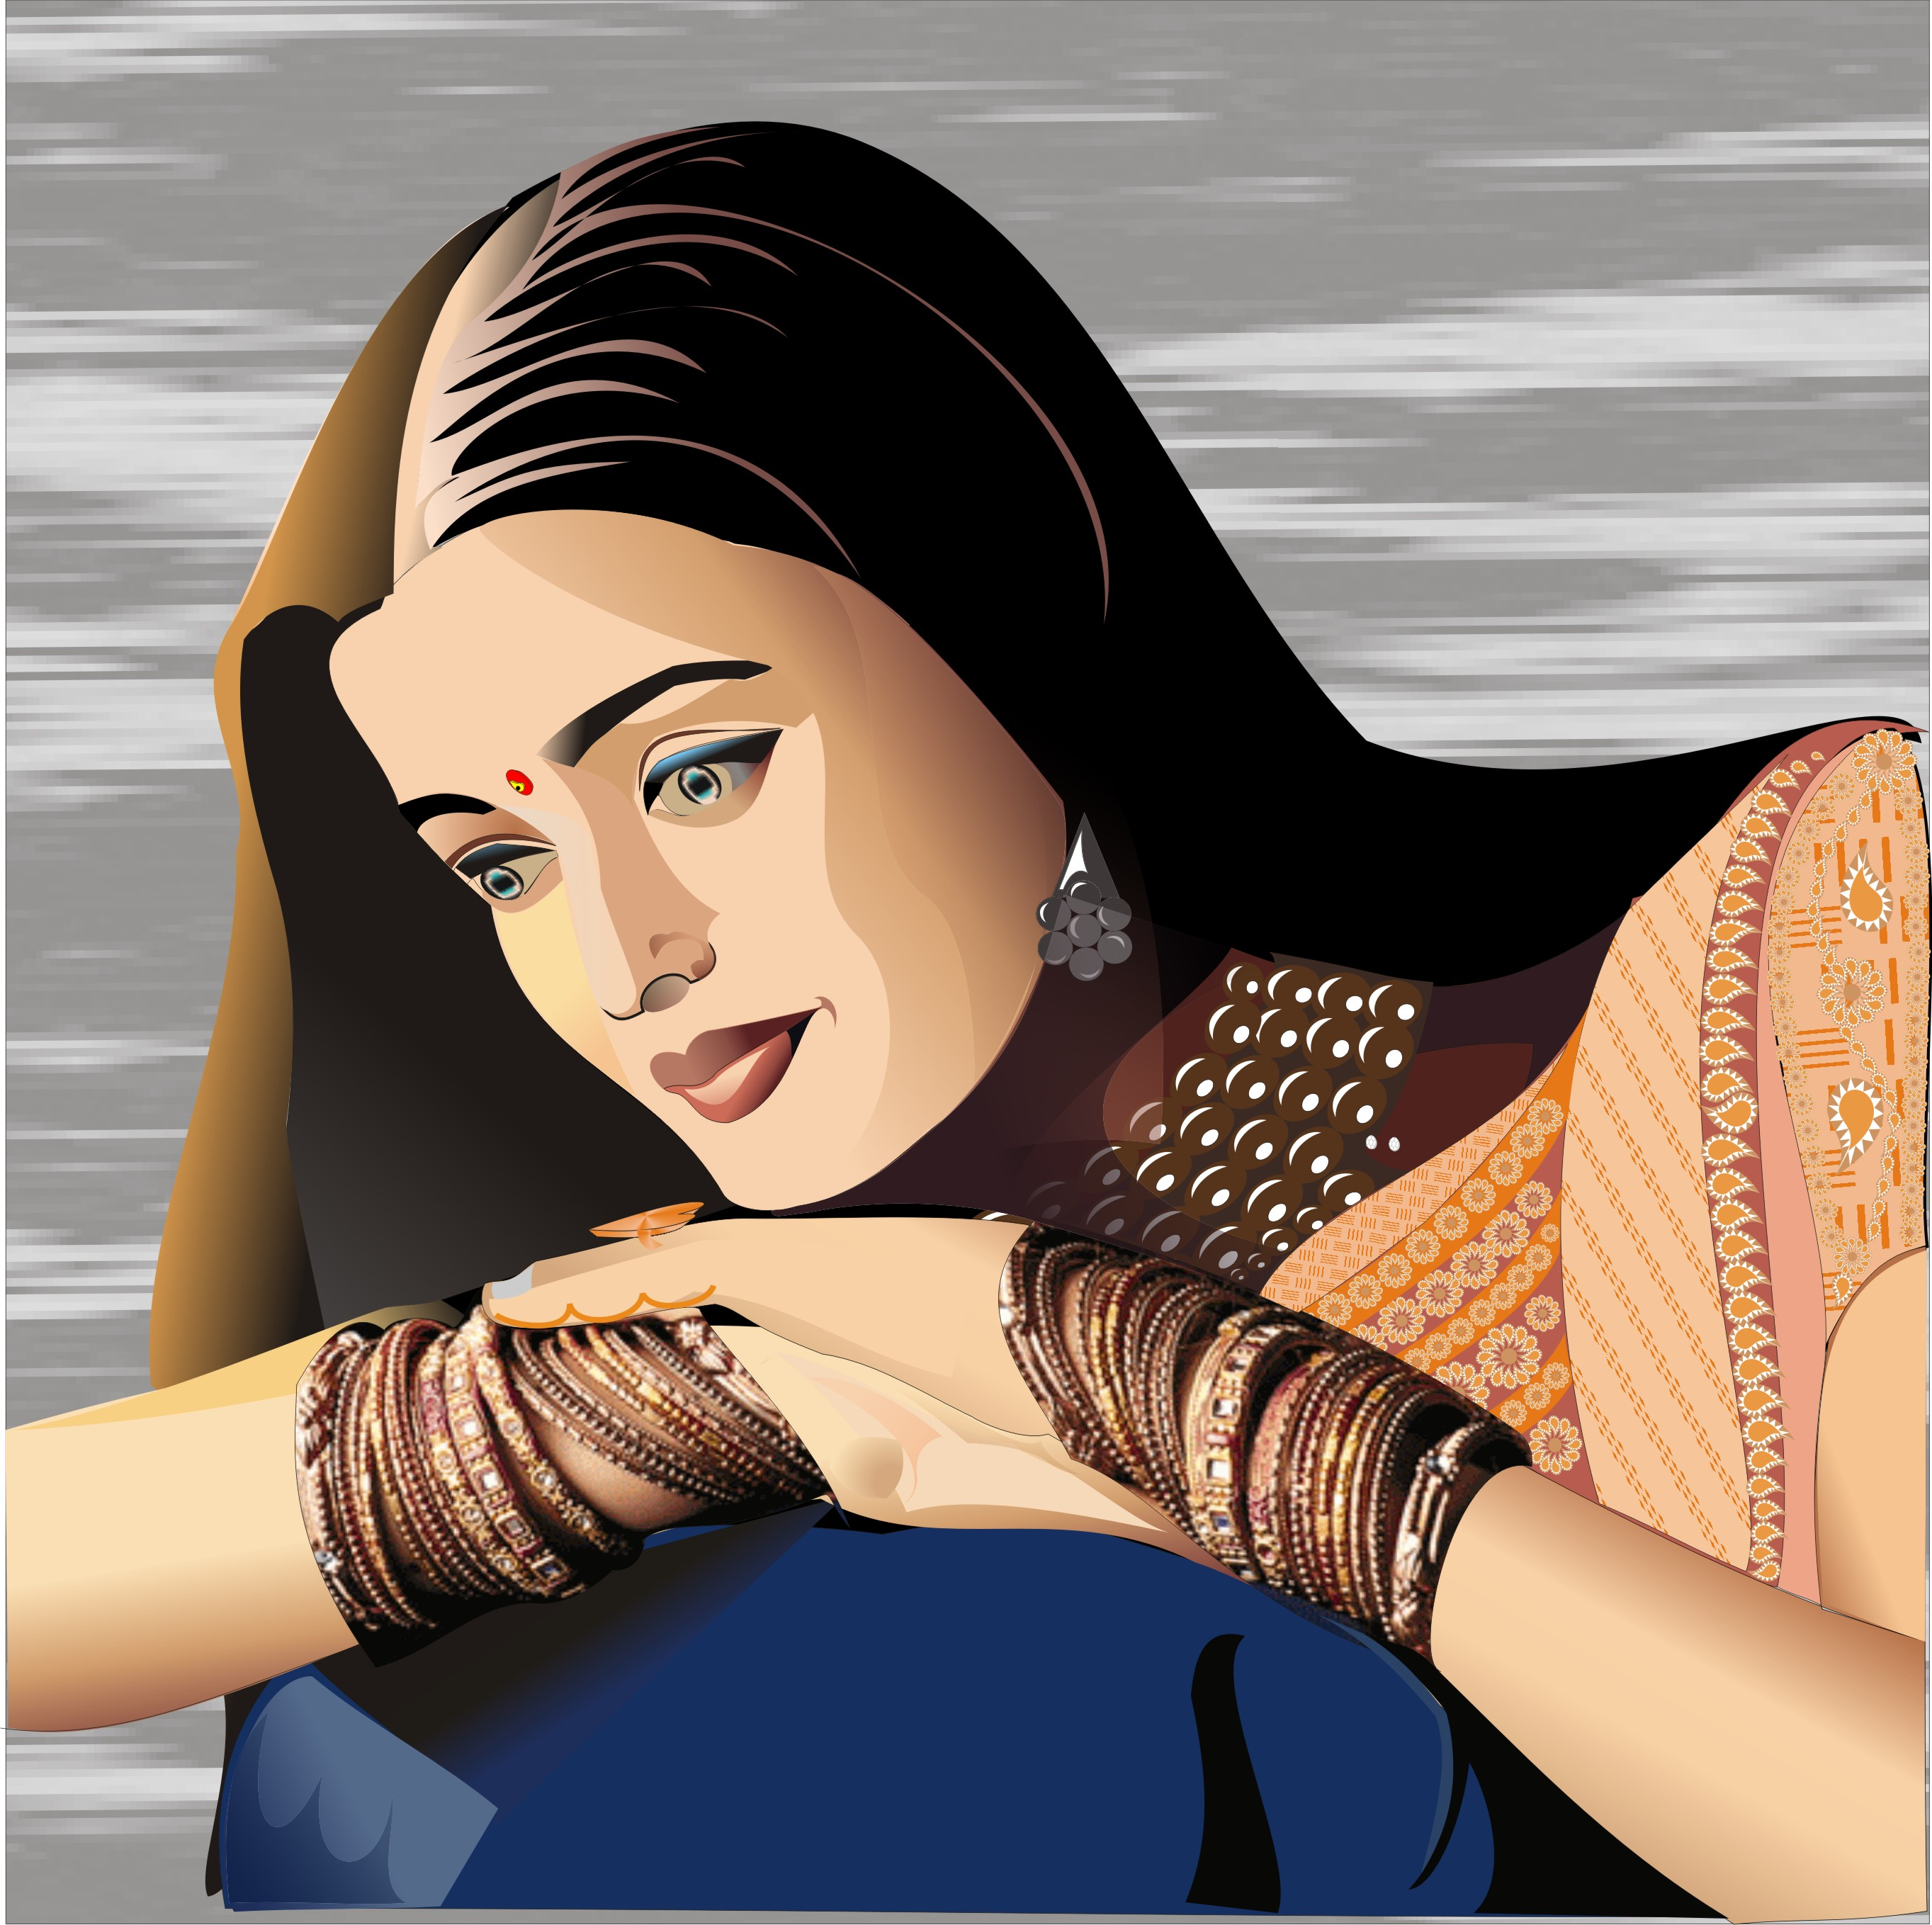 Coreldraw vector graphics - With Corel Draw There Is No Limit To What You Can Create The Secret Is The Better You Are At Thinking The Best You Will Become Below Is What People Has